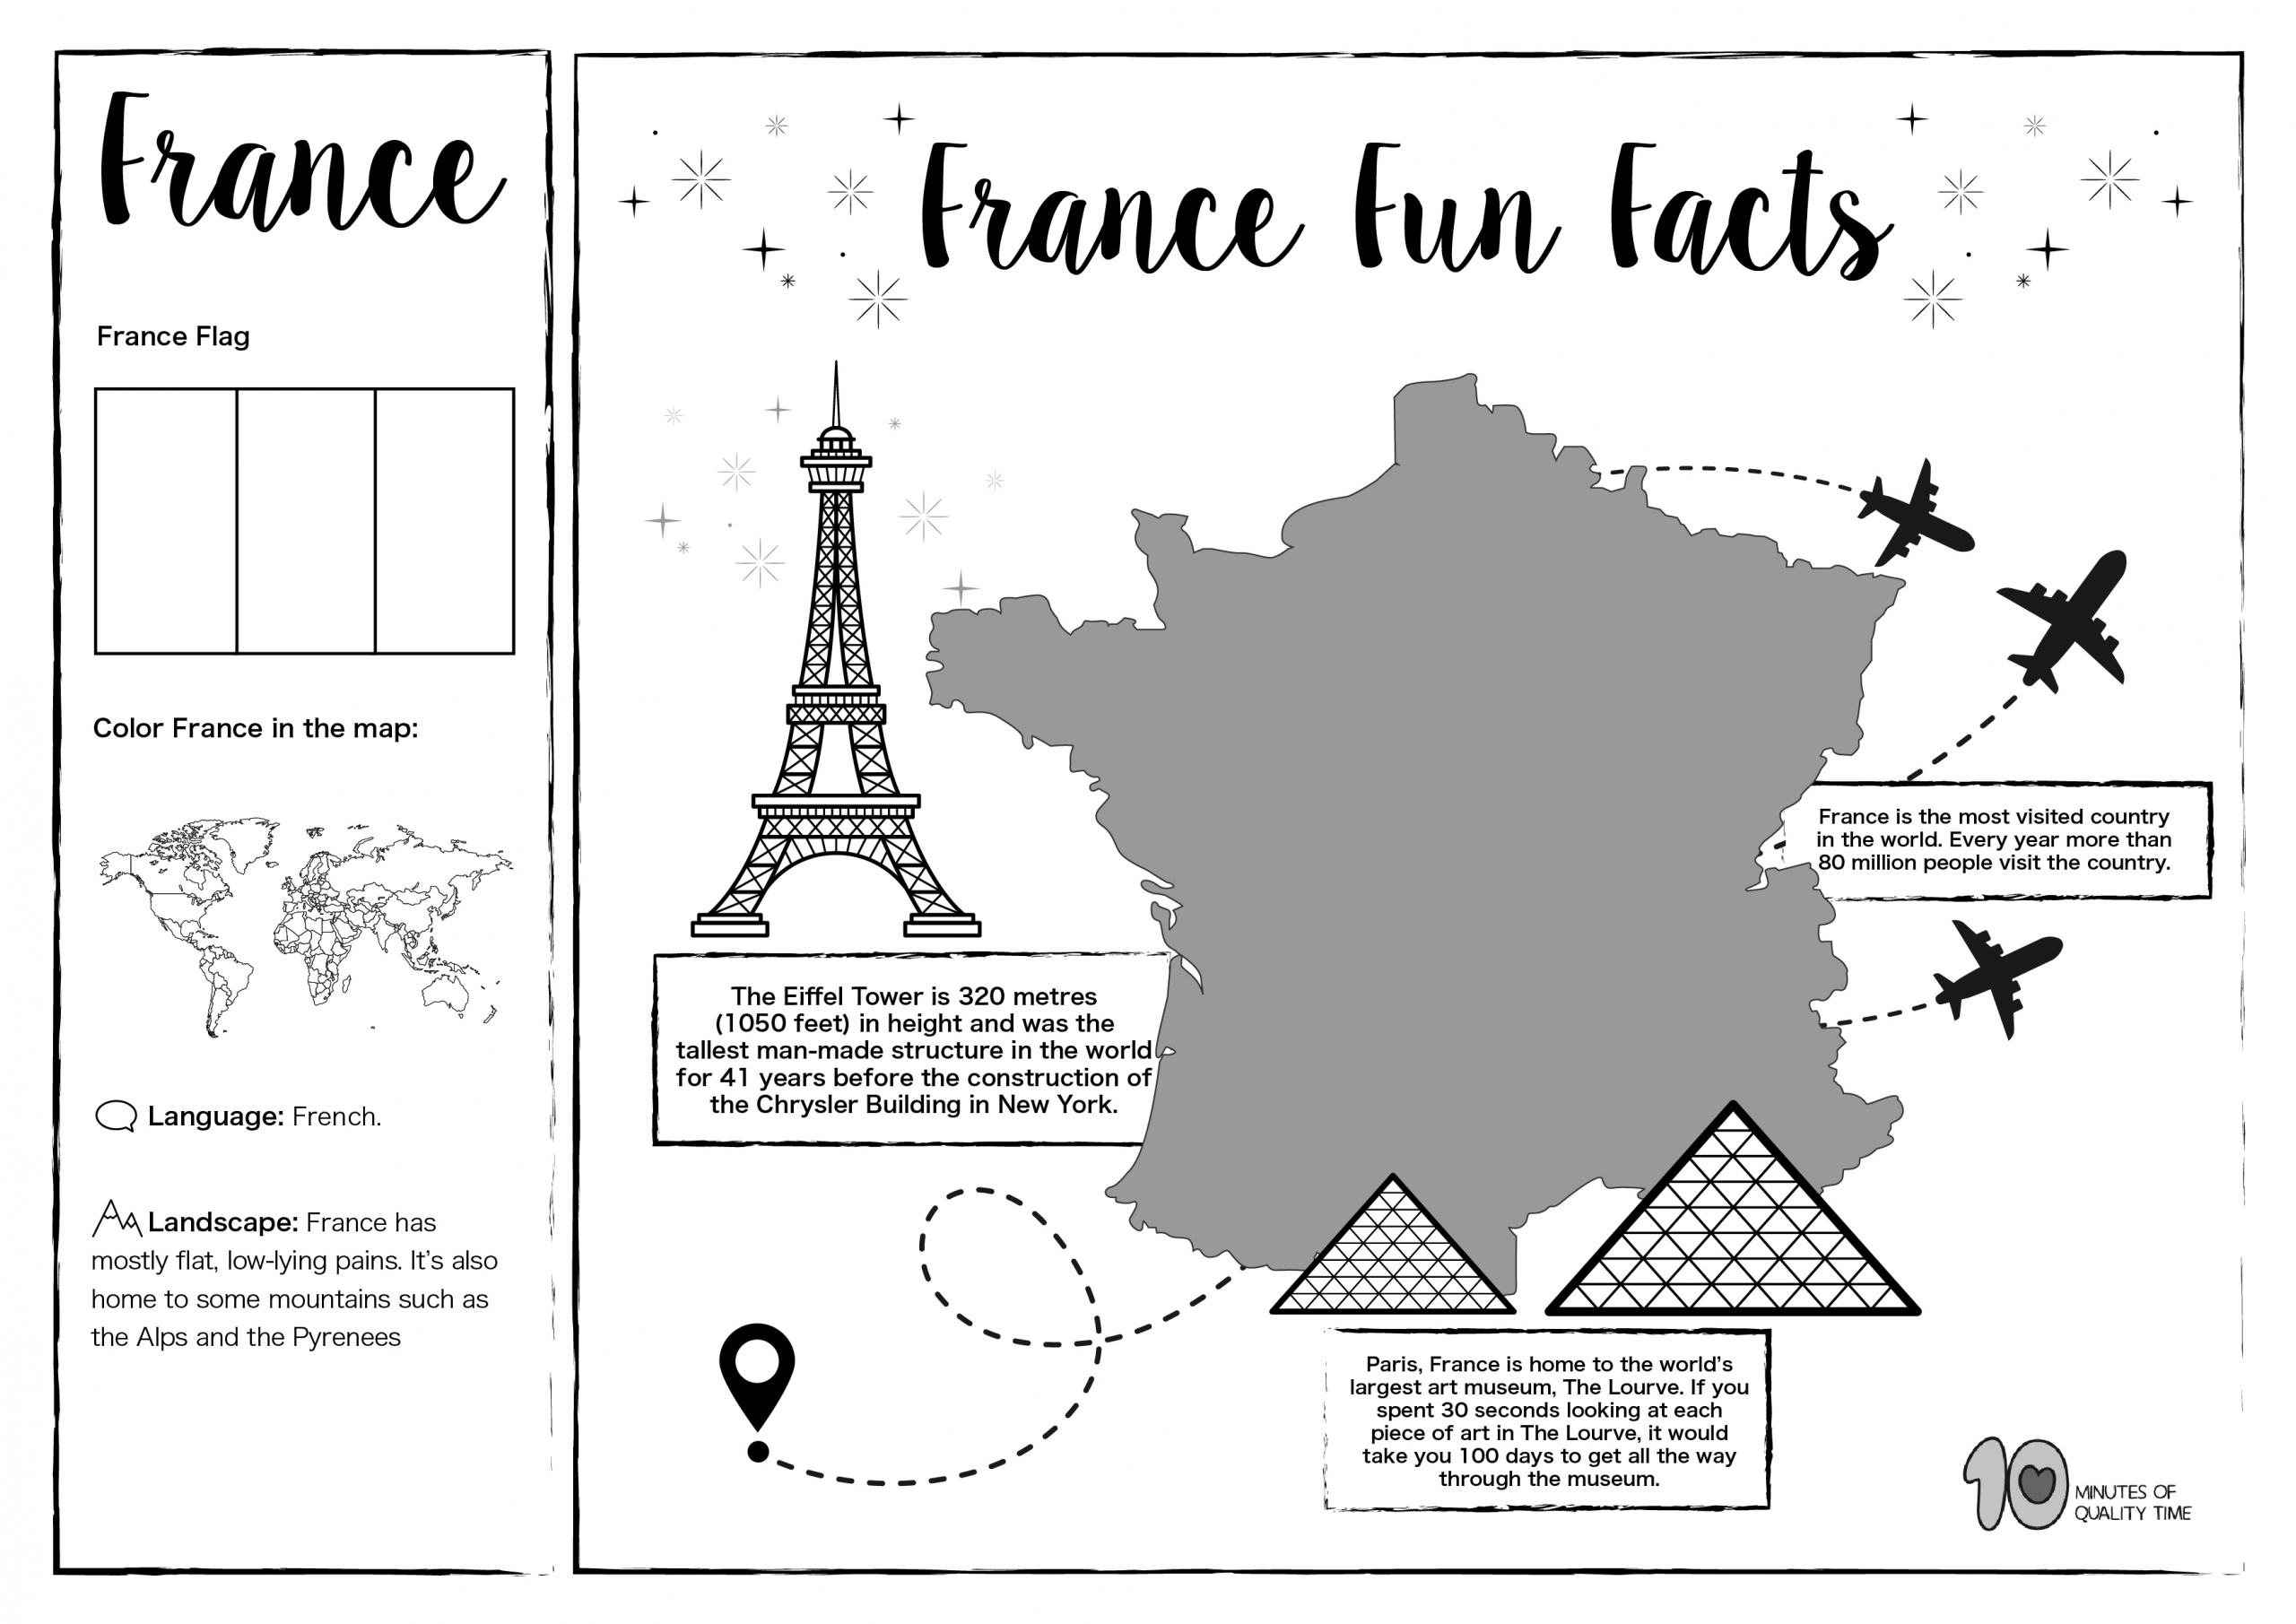 France Free Lesson Plan And Worksheets 10 Minutes Of